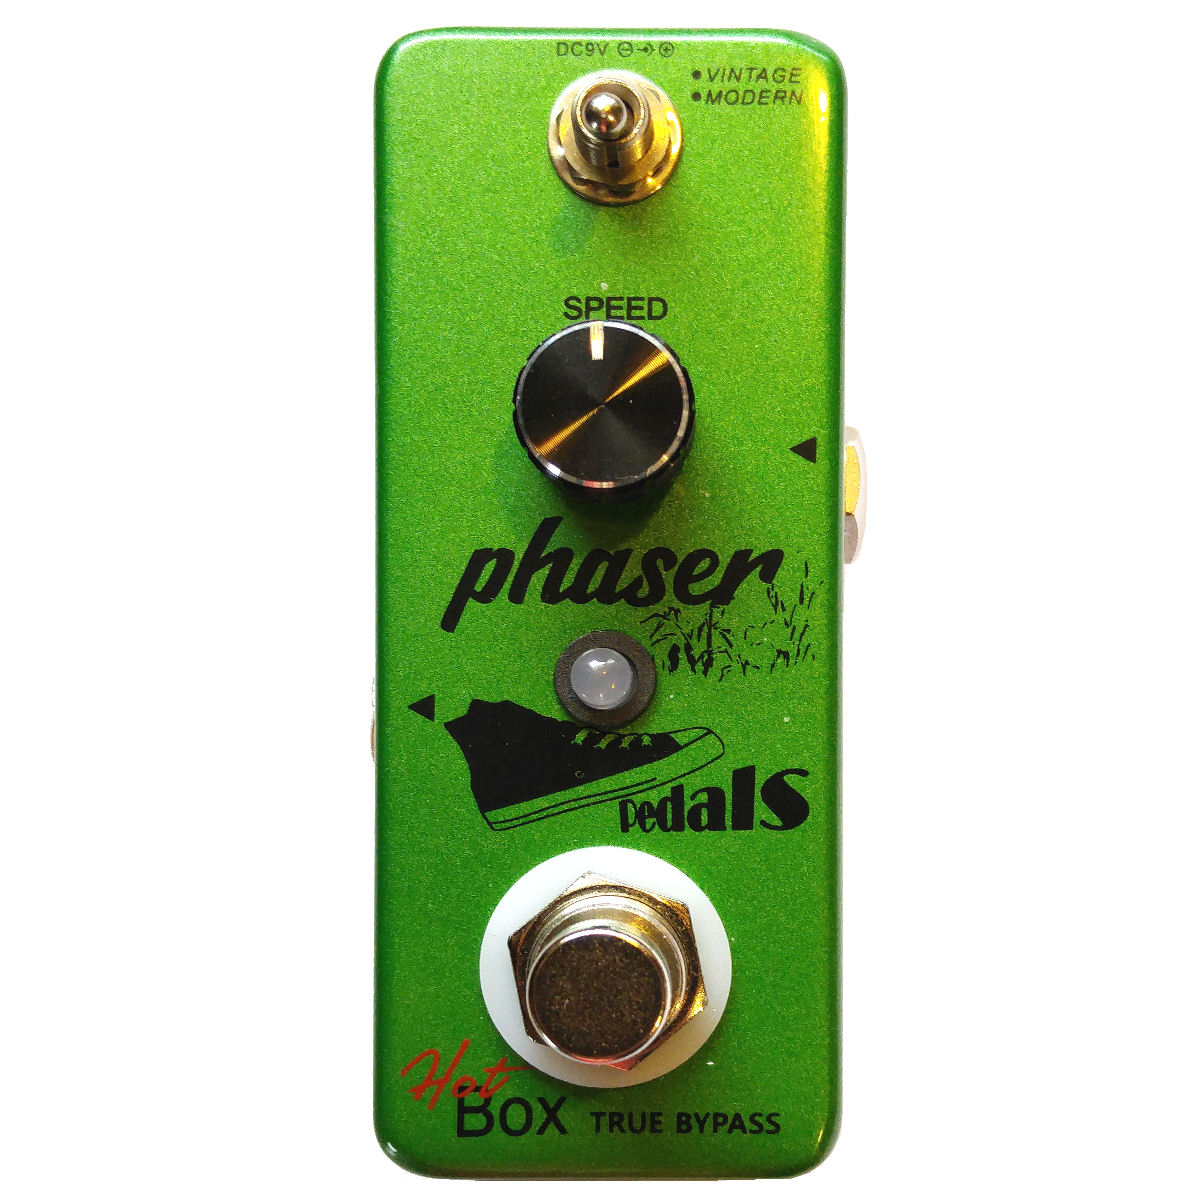 Hot Box Pedals Phaser Attitude Series